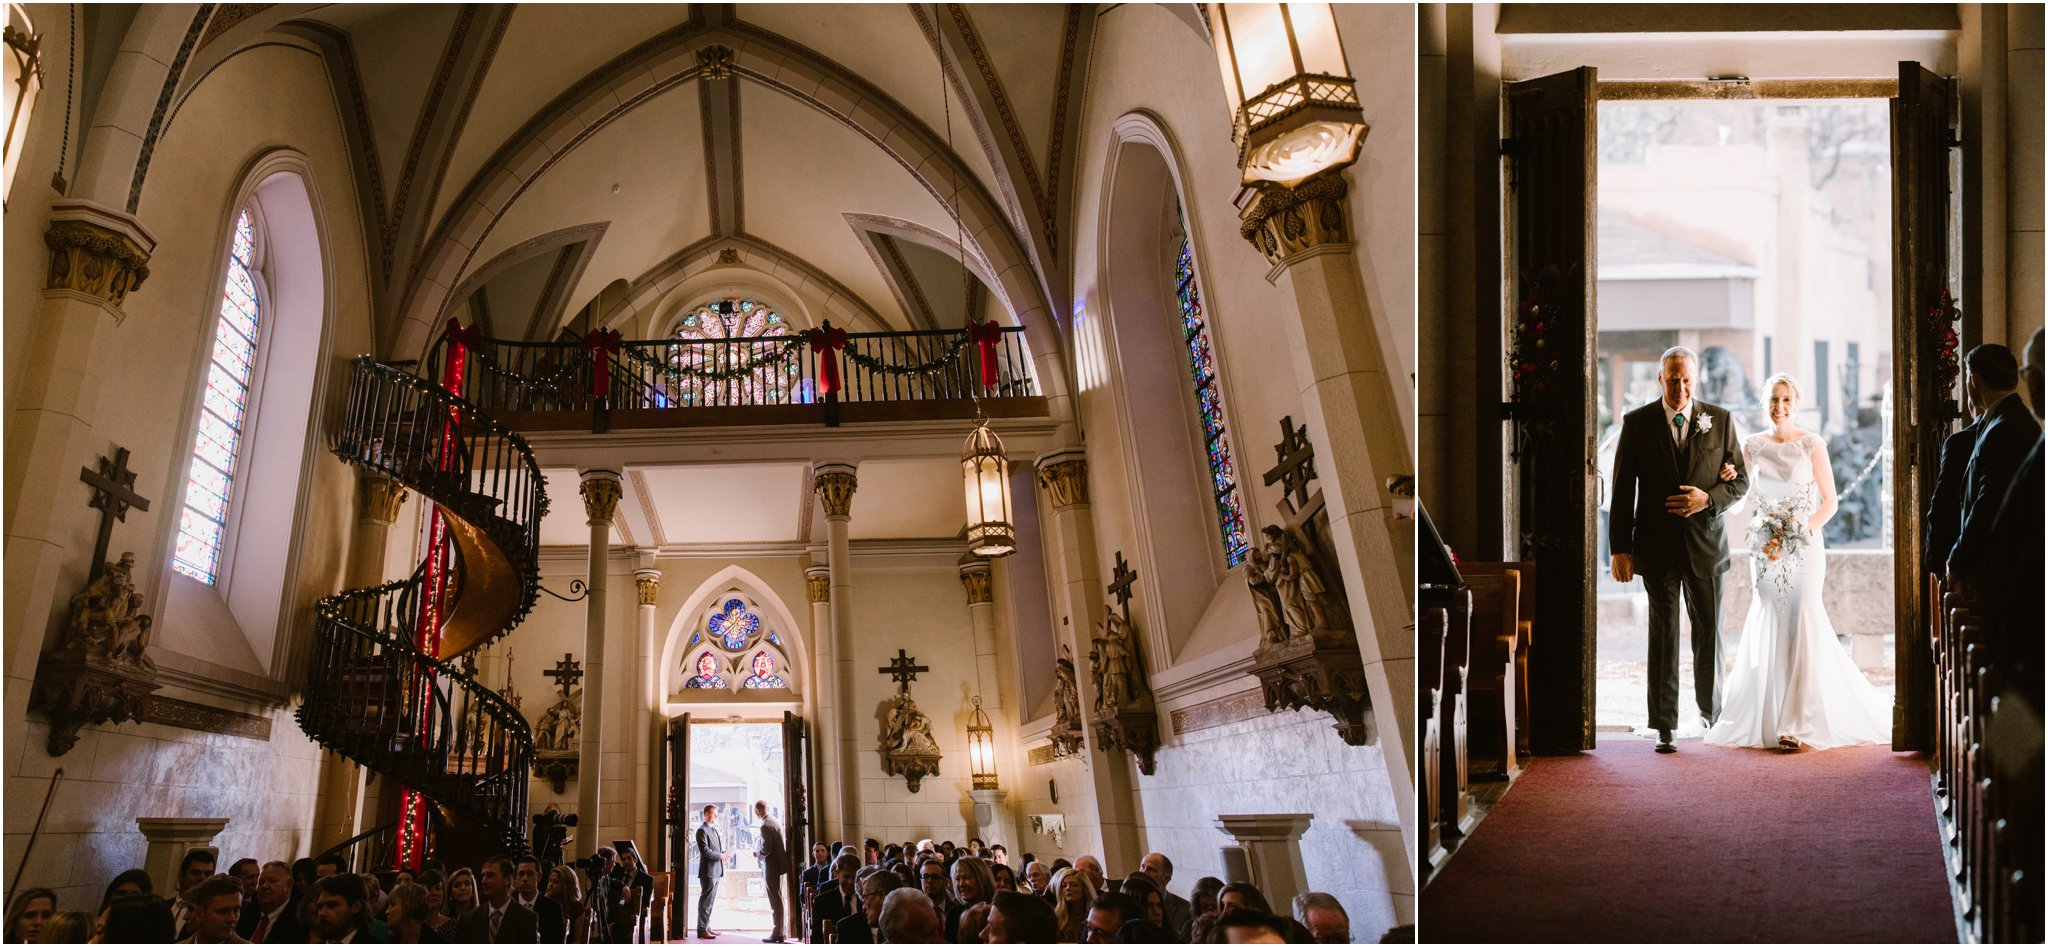 0913Loretto Chapel Wedding, Inn and Spa at Loretto wedding, Santa Fe wedding photographers, blue rose photography